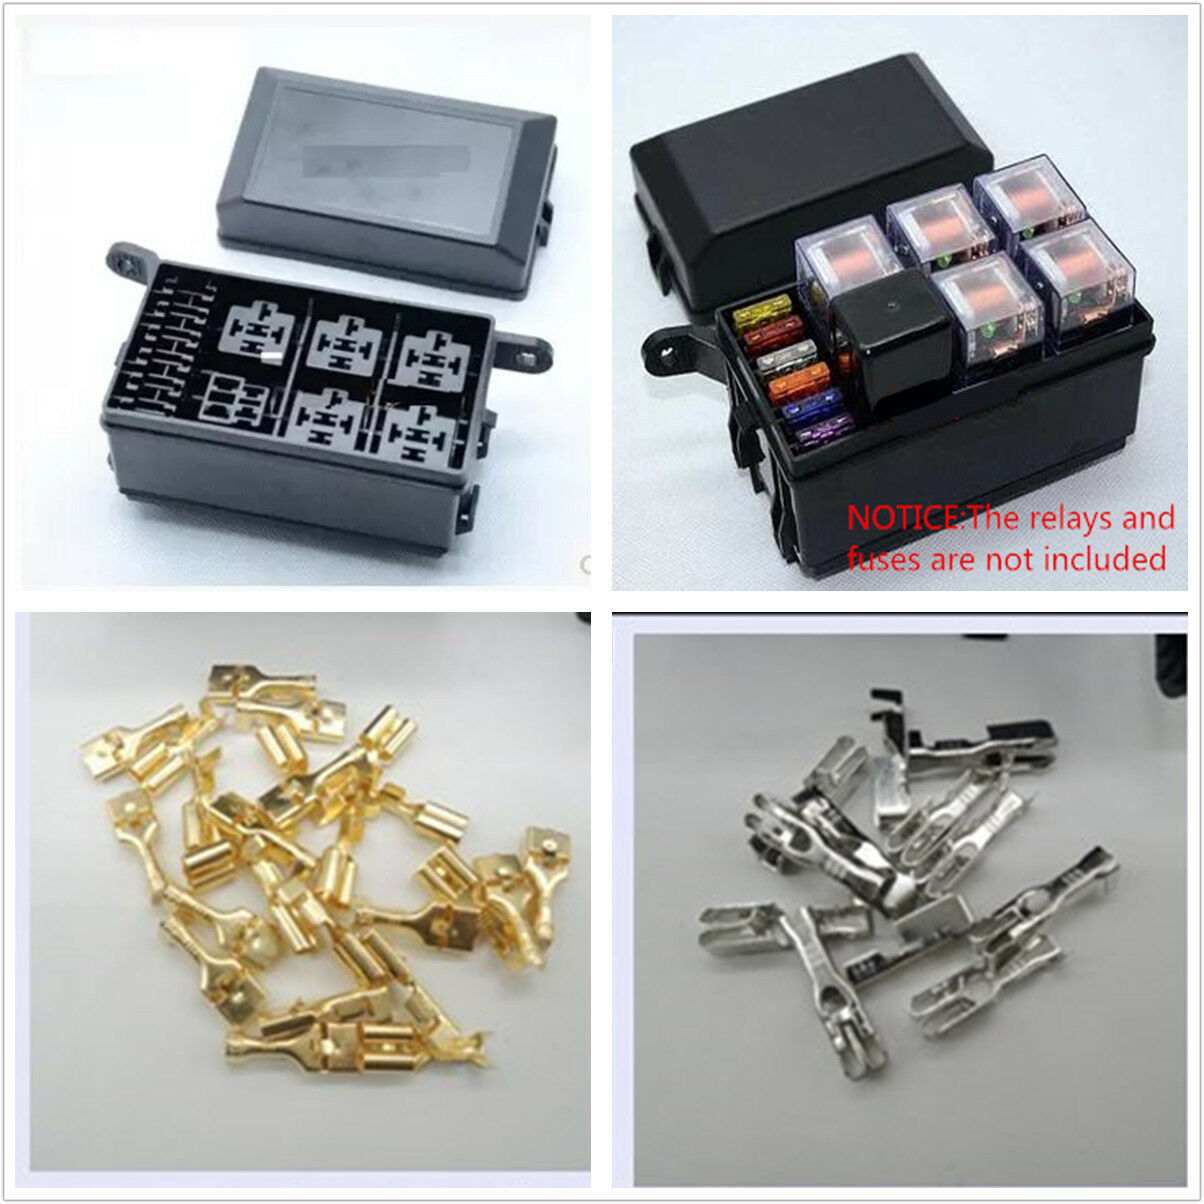 Fuse Box Auto 6 Relay Block Holder 5 Road For Nacelle Car Trunk SUV  Insurance 1 of 4FREE Shipping Fuse Box Auto ...